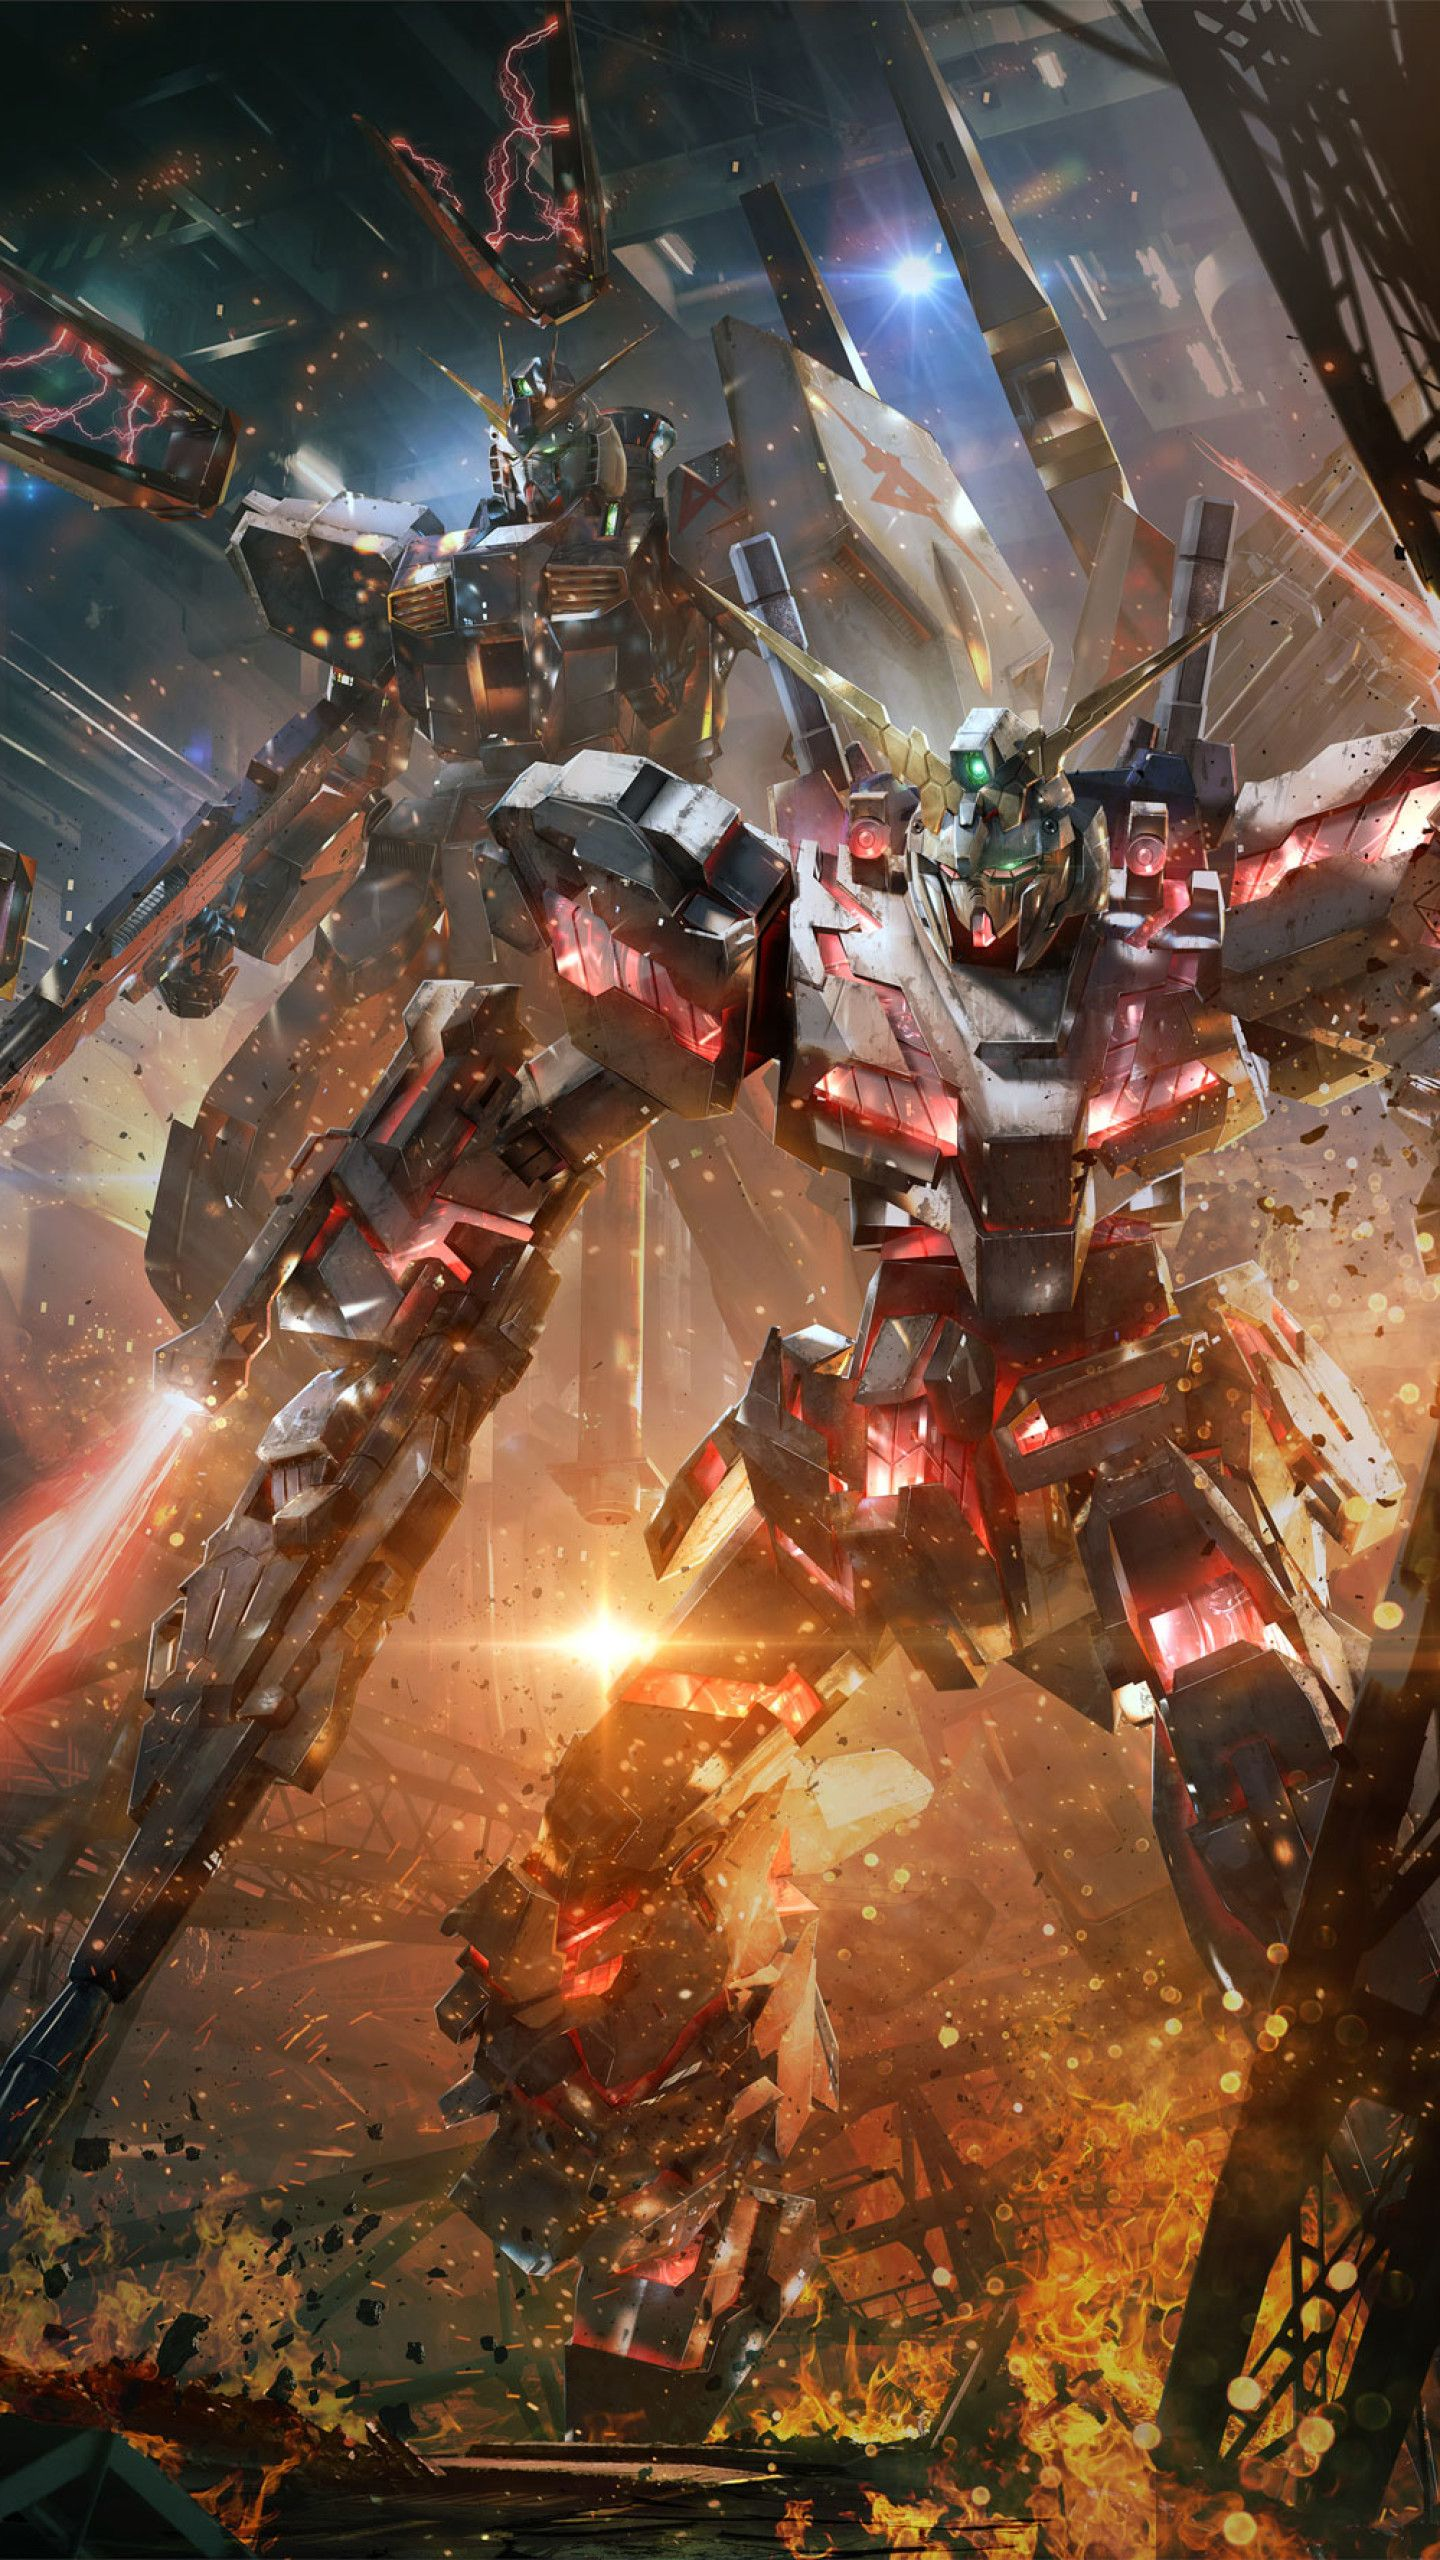 Gundam Wallpaper 1440x2560 Mywallpapers Site In 2020 Gundam Wallpapers Gundam Mobile Suit Unicorn Gundam